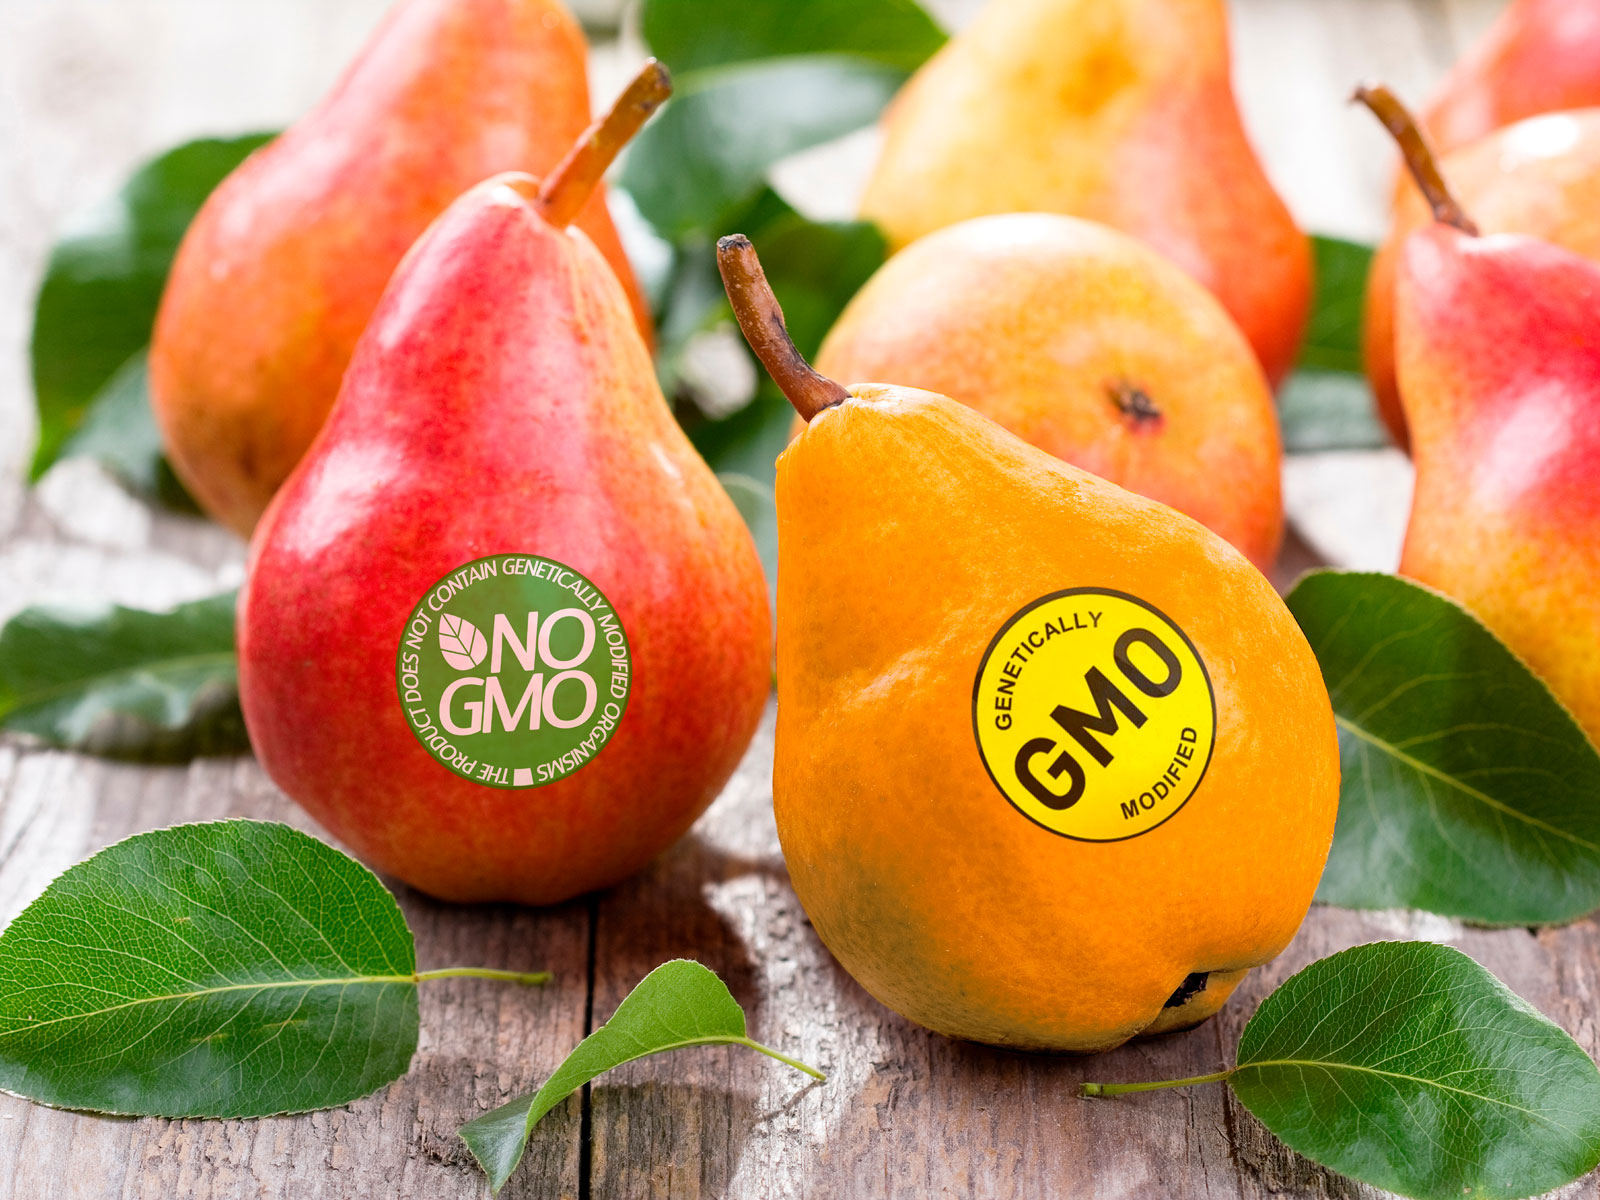 whole-foods-gmo-policy-FT-BLOG0518.jpg